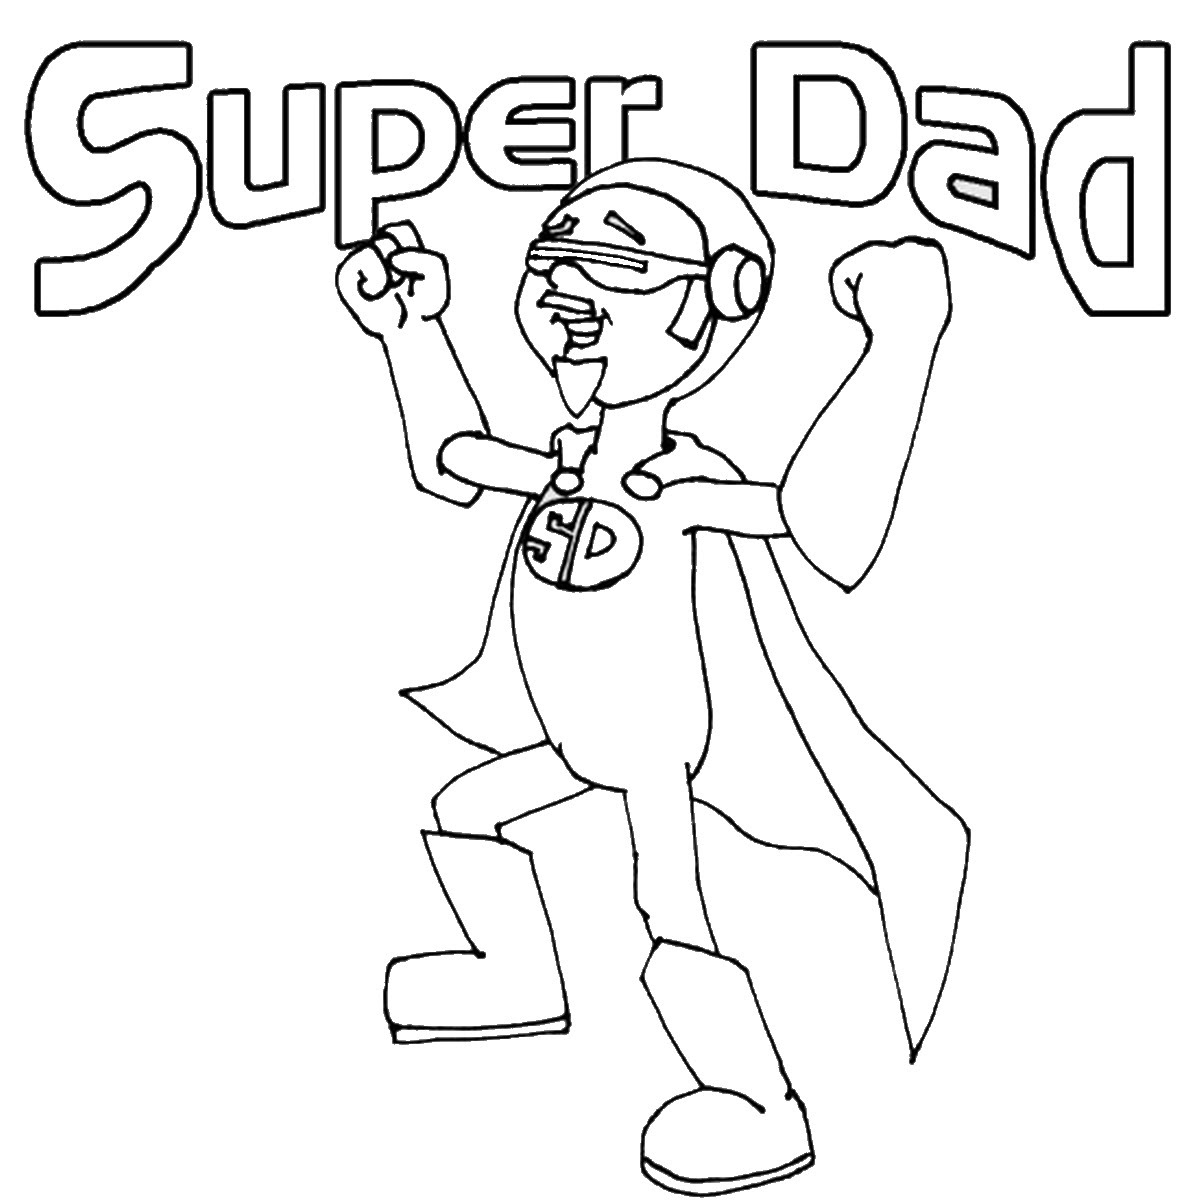 Super Dad Coloring Pages at GetDrawings | Free download